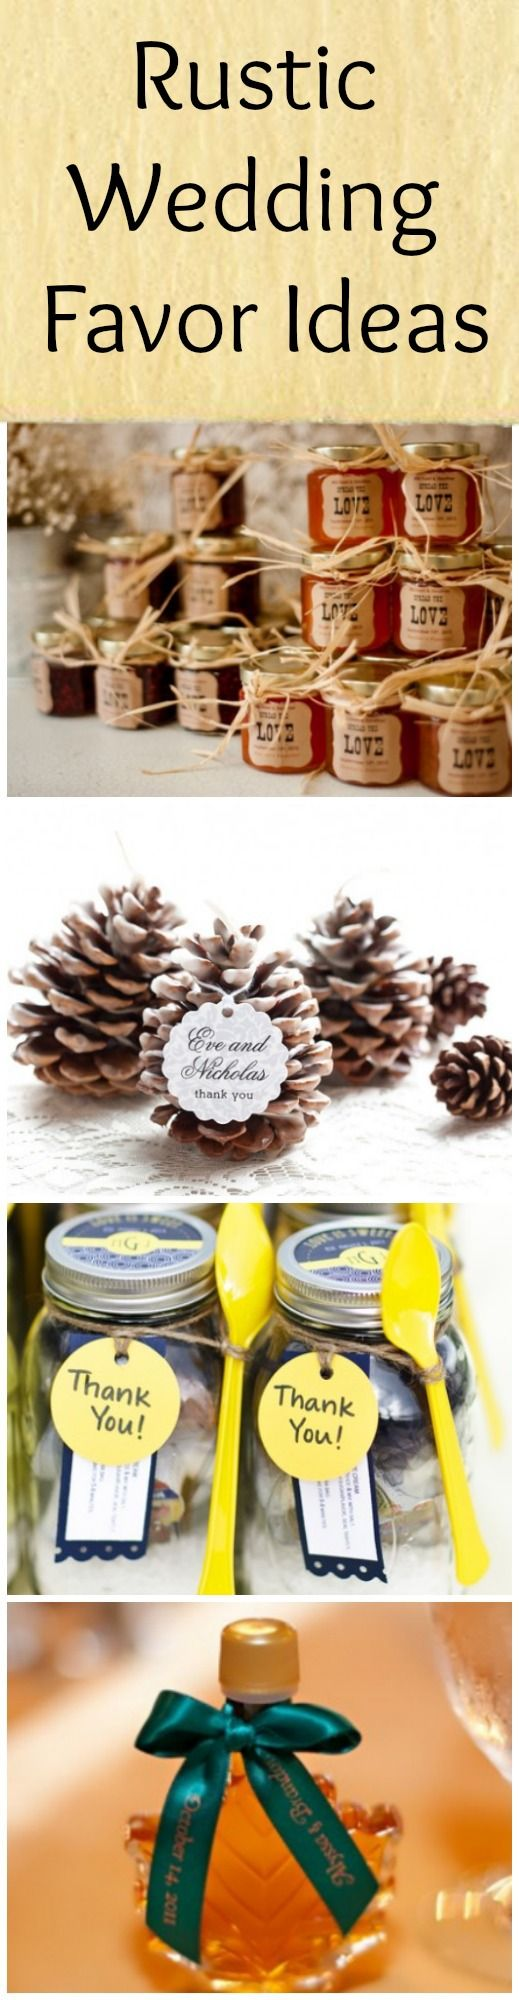 The Top 10 Best Rustic Wedding Favor Ideas